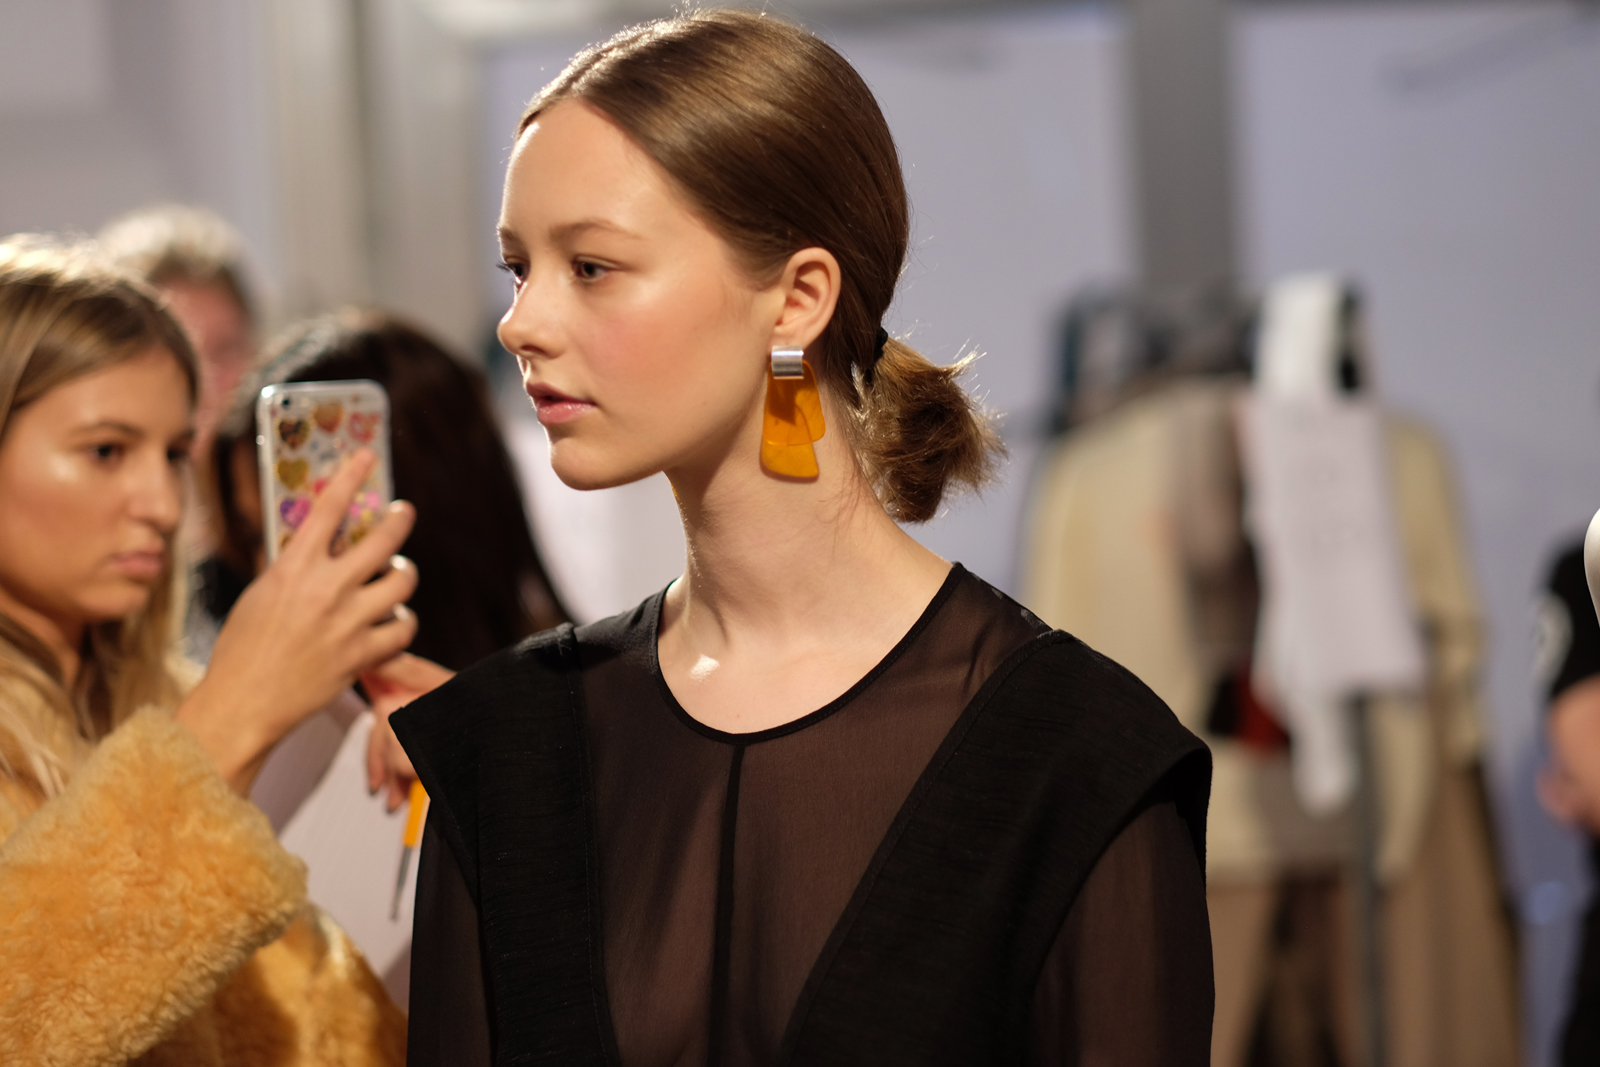 Lucite earrings backstage at Penny Sage's NZFW show | Chloe Hill Fashion Week Coverage 2016